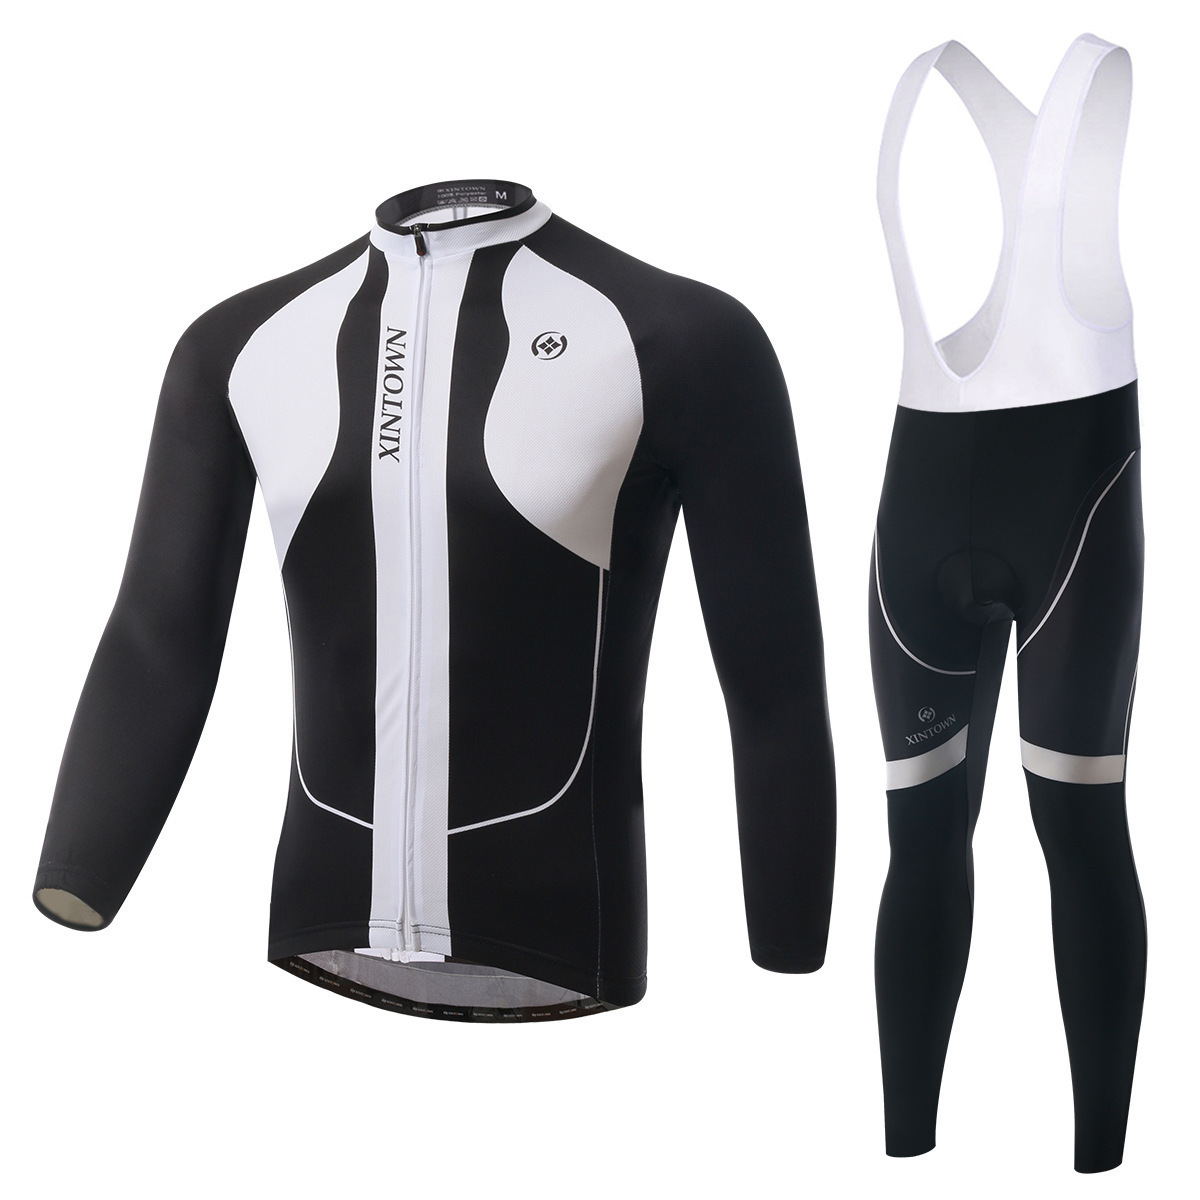 XINTOWN Long Sleeve Cycling Clothing Spring Mtb Bike Maillot Ciclismo Cycle Cycling Jersey Bib Pants Breathable Ropa Ciclismo xintown team mens cycling long sleeve jersey bib pants suit red clothing set ropa ciclismo mtb bike bicycle s 4xl